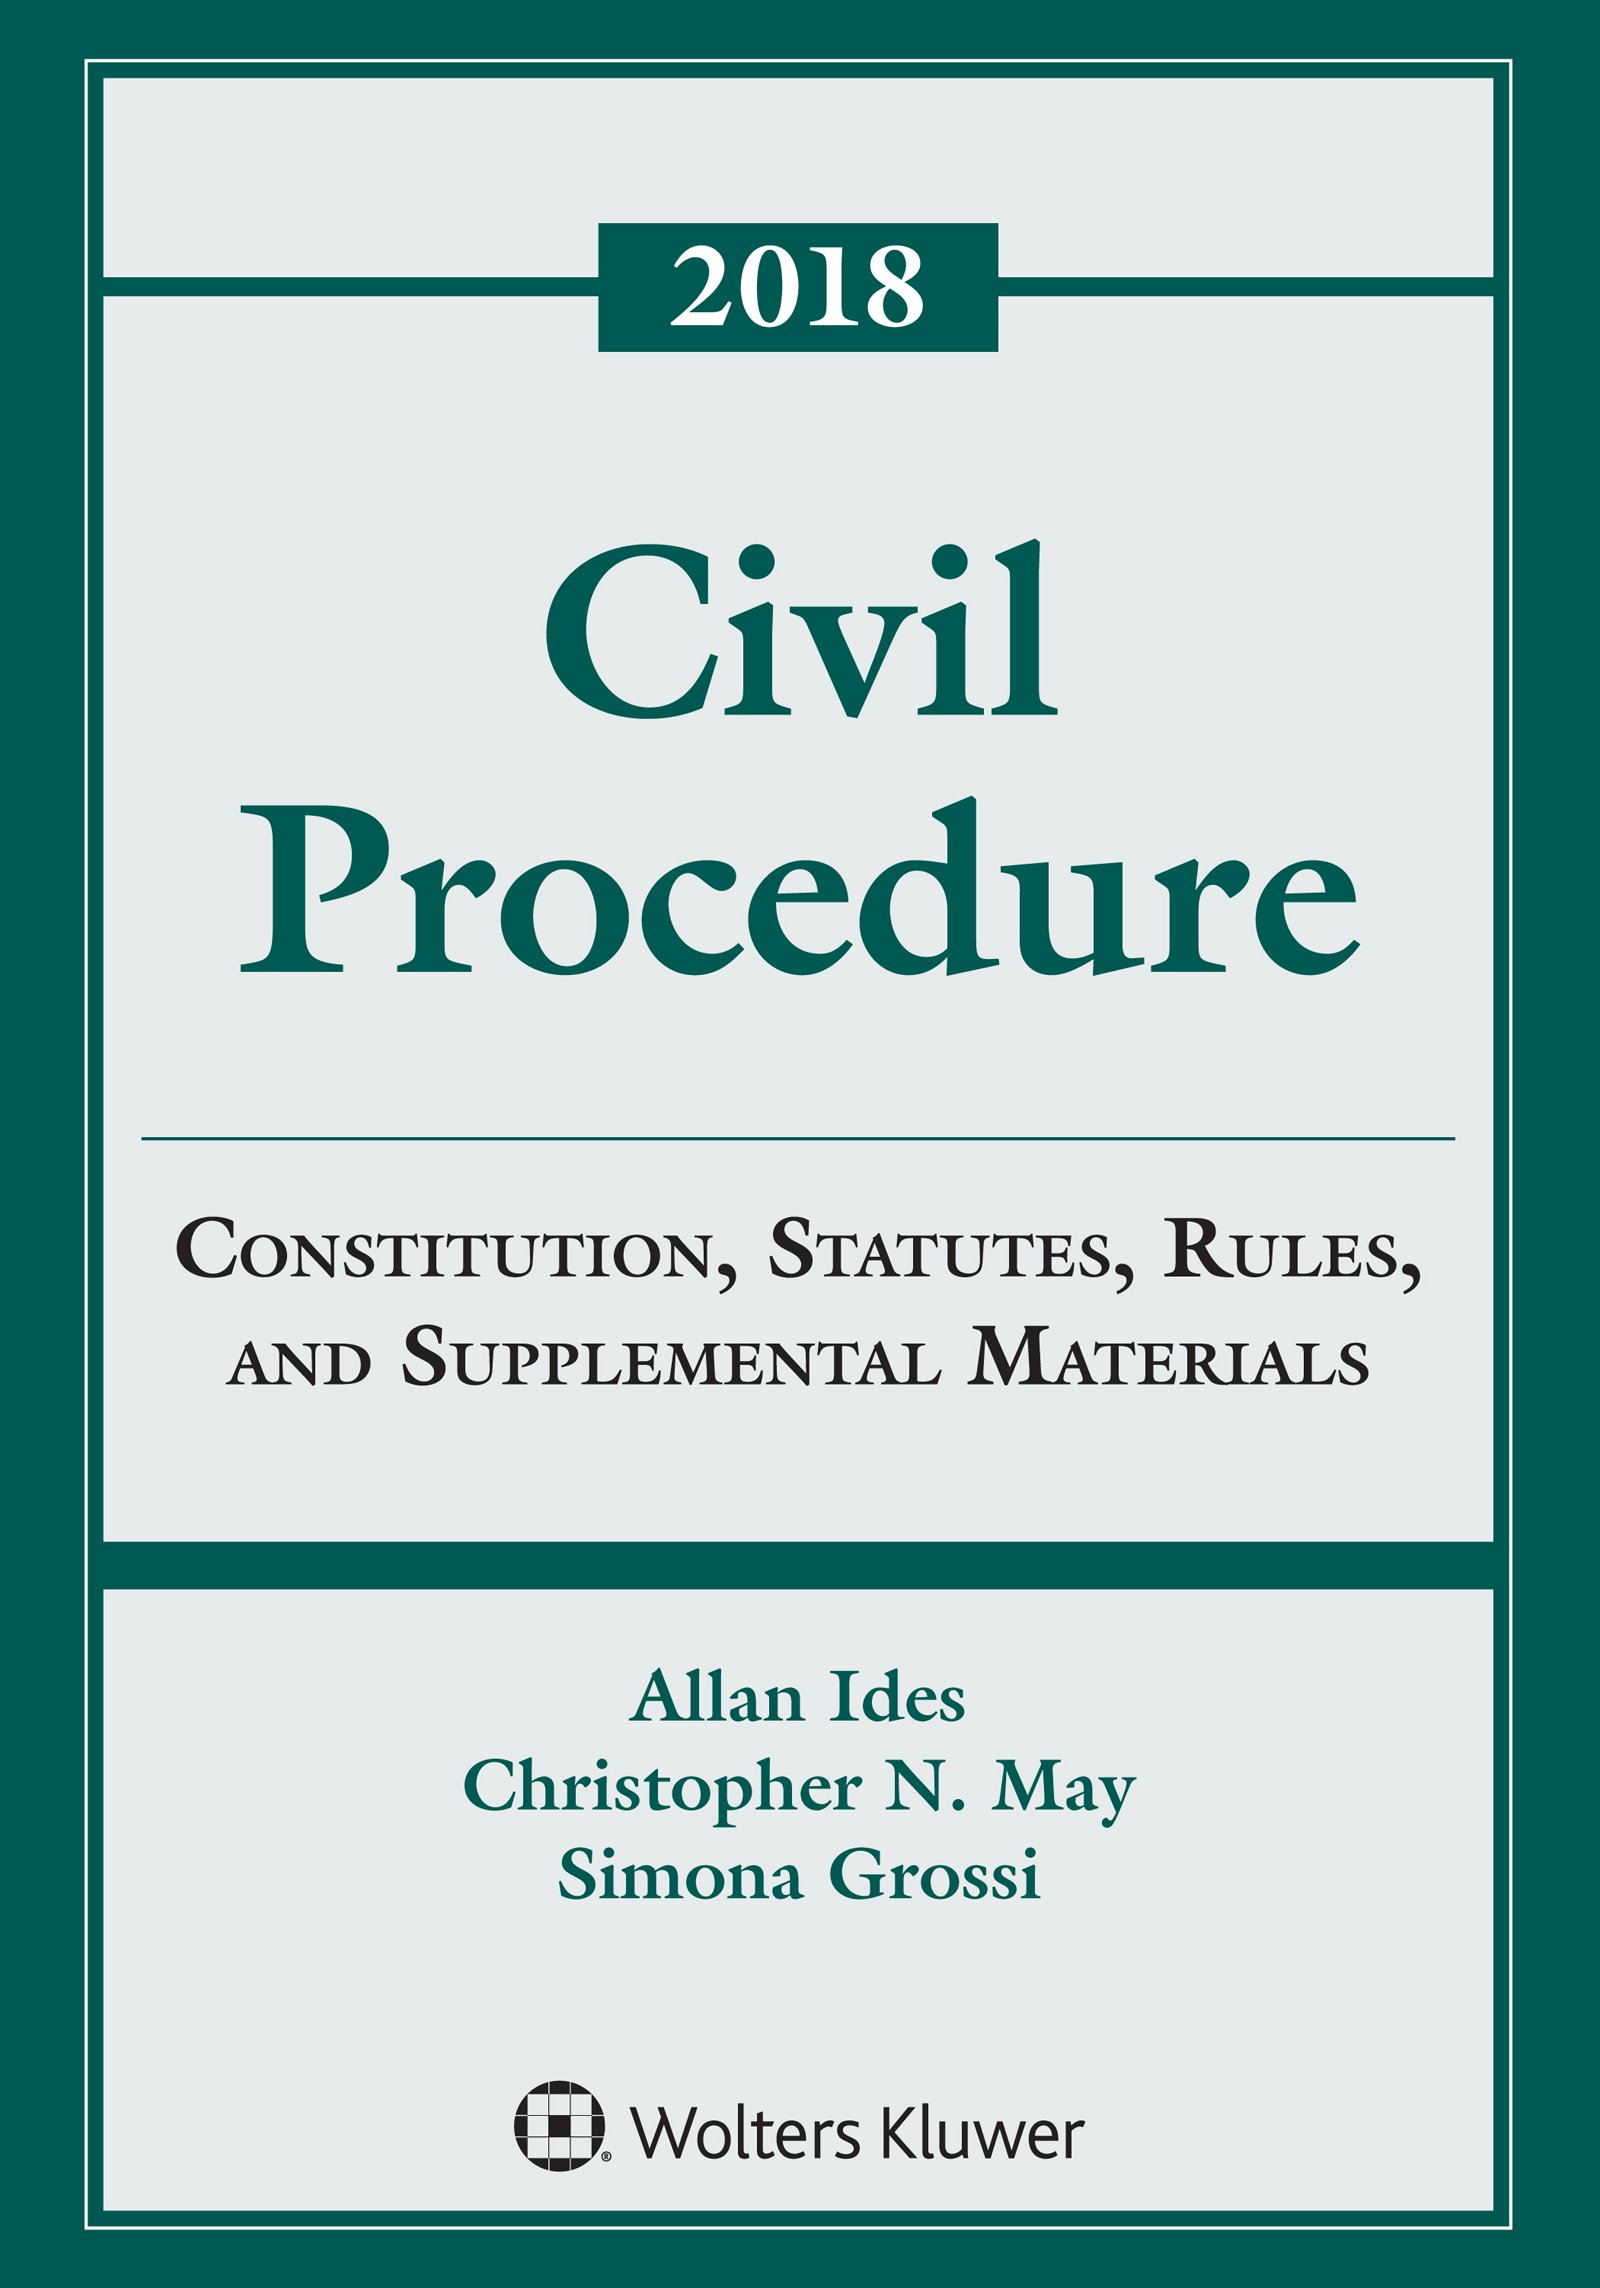 Civil Procedure: Constitution, Statutes, Rules, and Supplemental Materials  (Supplements): Allen Ides, Christopher N. May, Simona Grossi:  9781454894711: ...